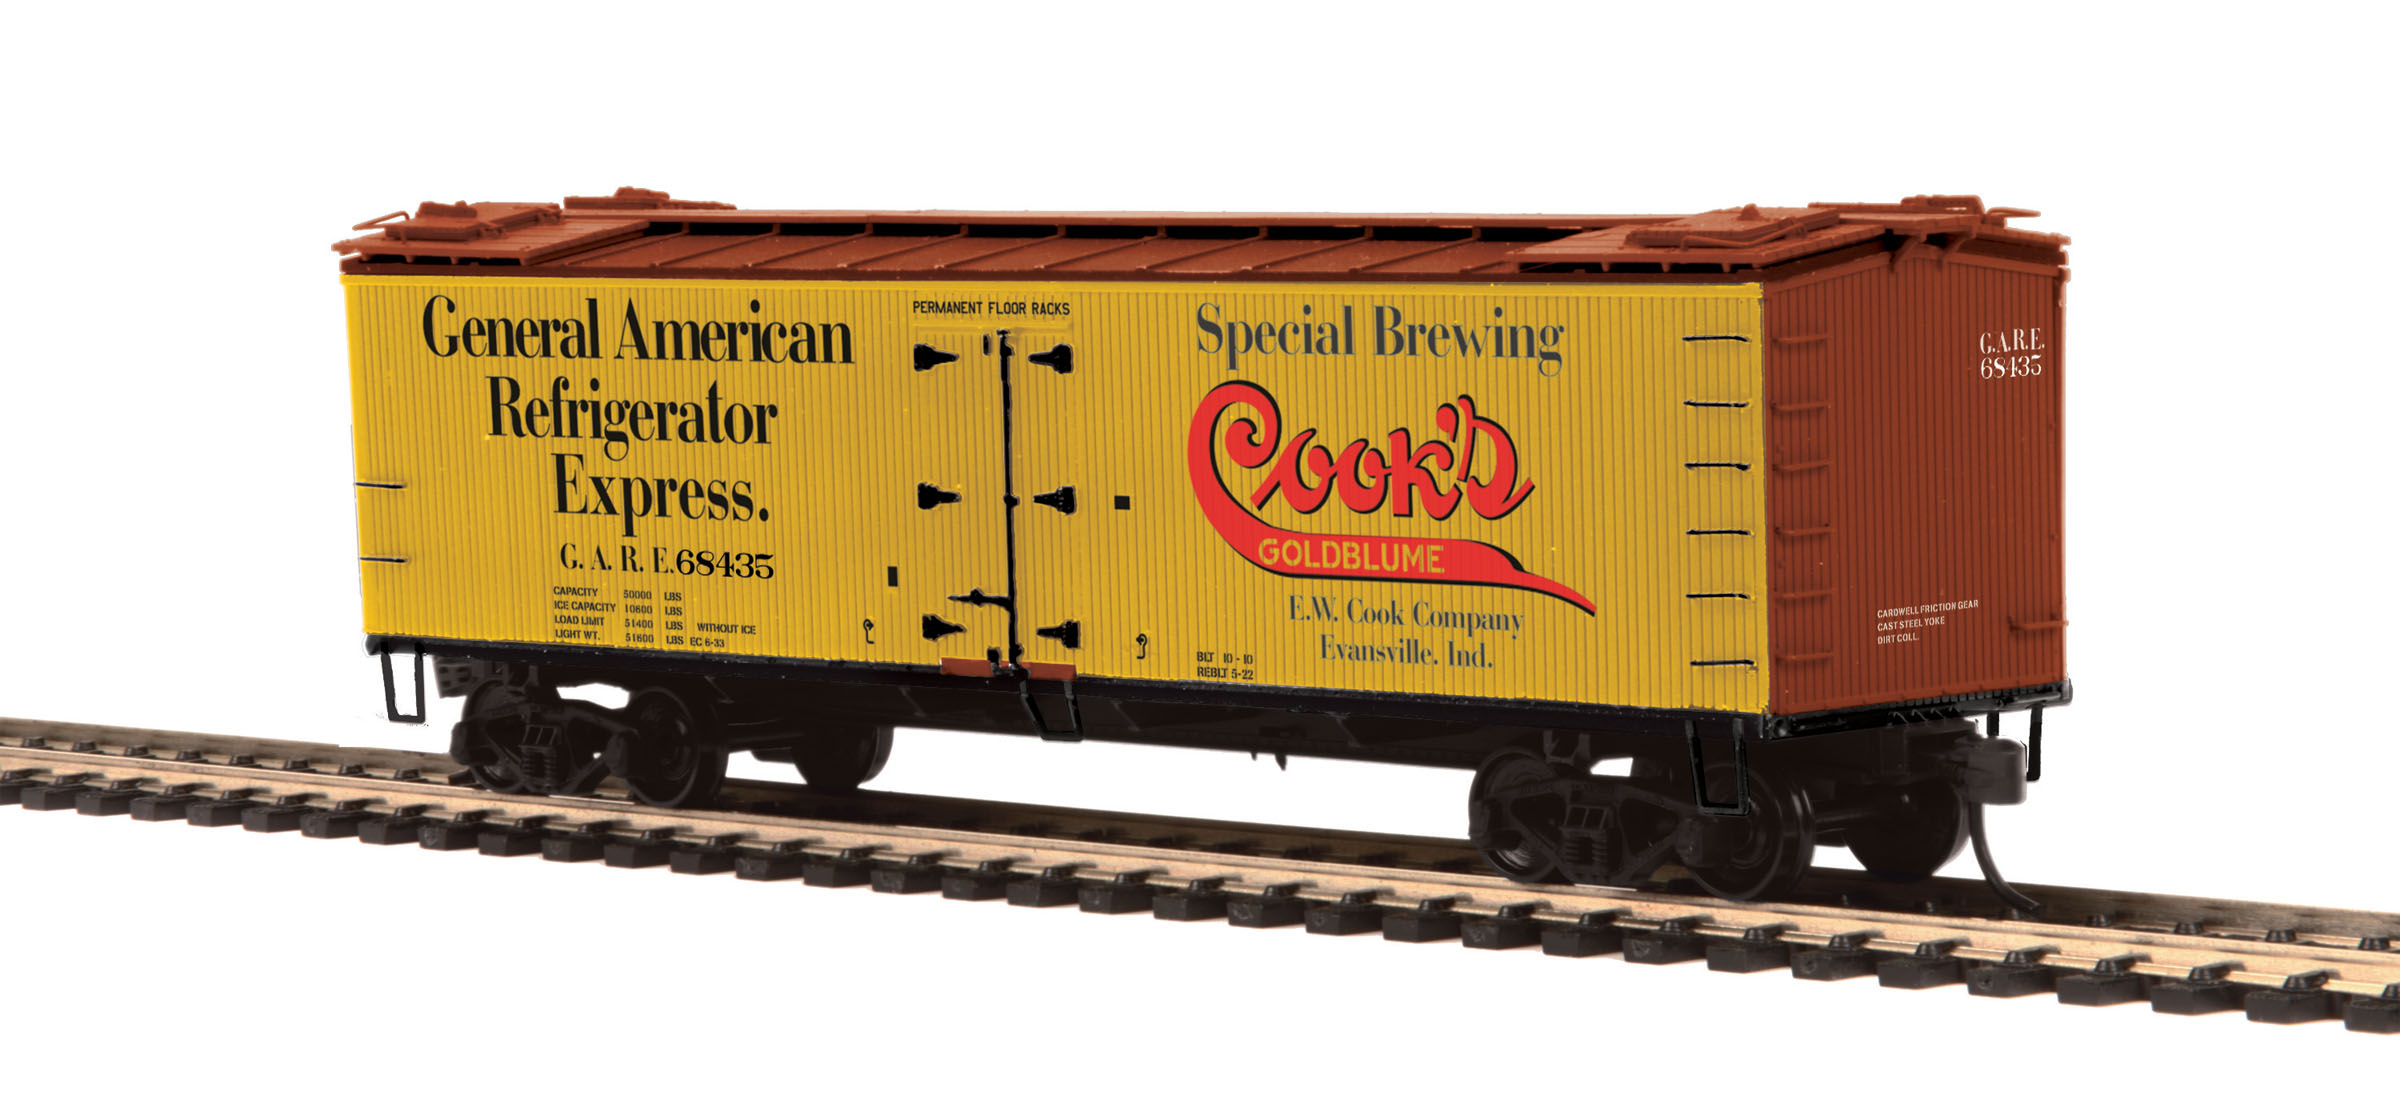 MTH 80-94046 HO R40-2 Wood Reefer, Cooks Goldblume Beer #68435 This is MTH 80-94046 HO R40-2 Wood Reefer, Cooks Goldblume Beer #68435. The coming of the railroad changed the way America ate and drank. Before the iron horse connected every town of any importance to the outside world, most food was grown or produced locally. The arrival of cheap, fast, refrigerated transport - in the form of the woodsided reefer with ice bunkers at each end - enabled local brewers, dairies, meat processors, and other food businesses to become players on a national scale.Until 1934, shippers could advertise their wares on leased bill - board reefers, each a hand-painted traveling work of art. That year, the Interstate Commerce Commission outlawed the flamboyant paint schemes because the cars often hauled shipments from other companies - whose freight bills thus unfairly paid to advertise the lessee's products.M.T.H. Electric Trains' HO premium rolling stock like this R40-2 reefer car are true 1/87 scale models of North American freight cars. Abundantly detailed with separate grab irons, steps, hatches and brake wheels ensure that these models will hold up to even the most discrminating eye. Outfitted with smooth rolling trucks and Kadee couplers make them a favorite of operators who enjoy long consists of colorful liveries, each available in multiple car numbers.Its key features are:Intricately detailed durable ABS bodyMetal wheels and axlesDecorative brake wheelsSeparate metal handrails1:87 scale dimensionsKadee® couplersDetailed undercarriageDetailed 4-wheel trucksUnit measures: 6 x 1 5/16 x 1 7/8Operates on 18 radius curvesCondition: Factory New (C-9All original; unused; factory rubs and evidence of handling, shipping and factory test run.Standards for all toy train related accessory items apply to the visual appearance of the item and do not consider the operating functionality of the equipment.Condition and Grading Standards are subjective, at best, and are intended to act as a gu